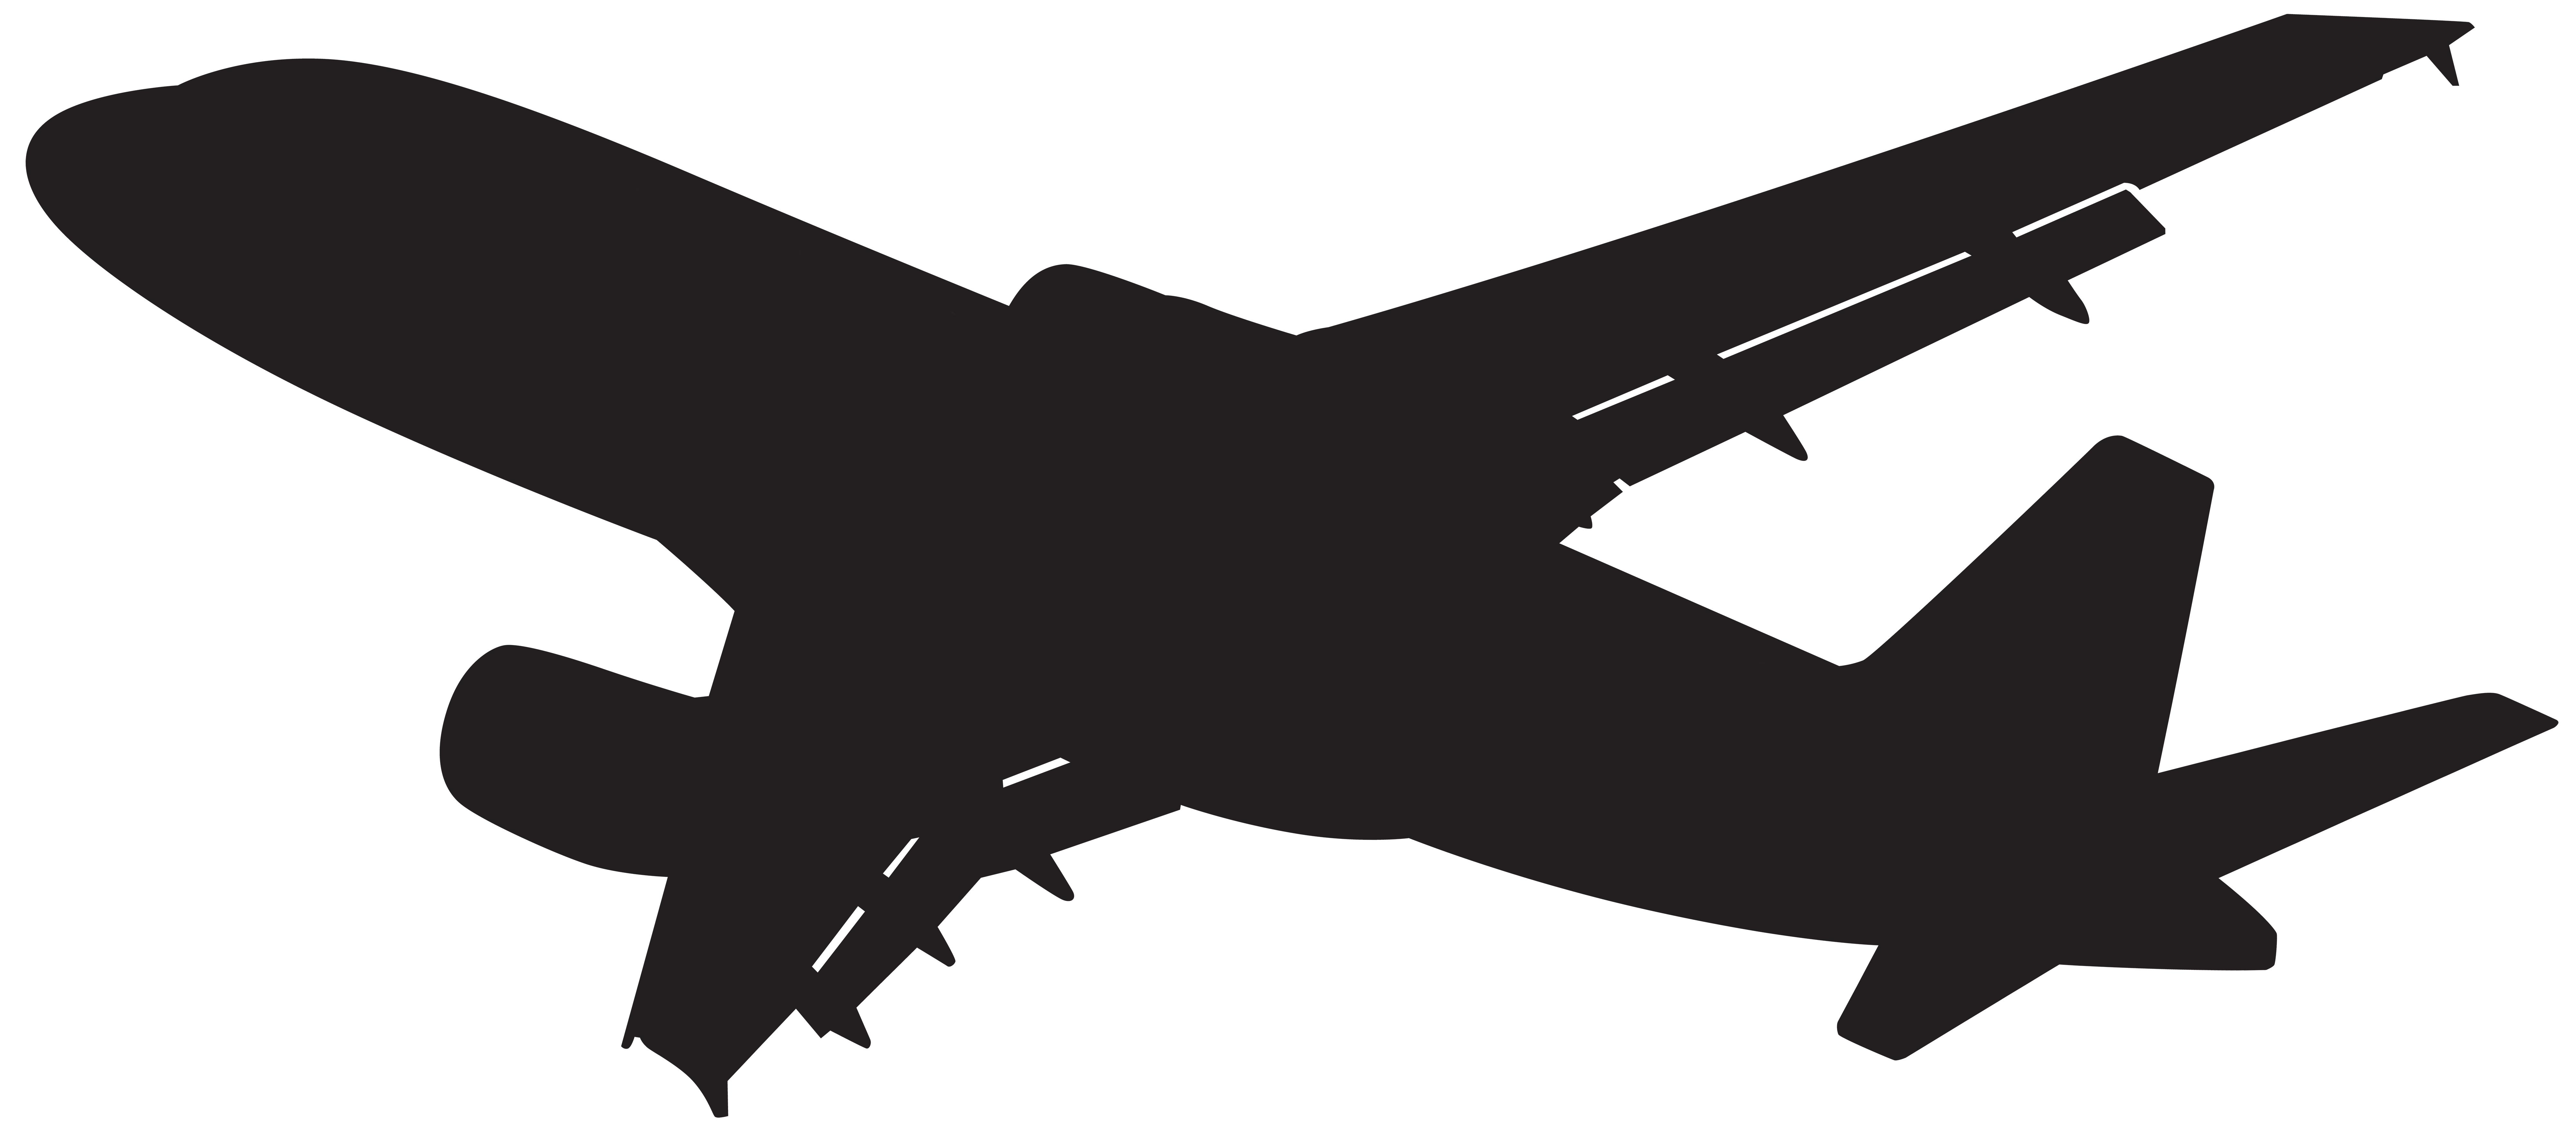 8000x3495 Plane Silhouette Png Clip Artu200b Gallery Yopriceville